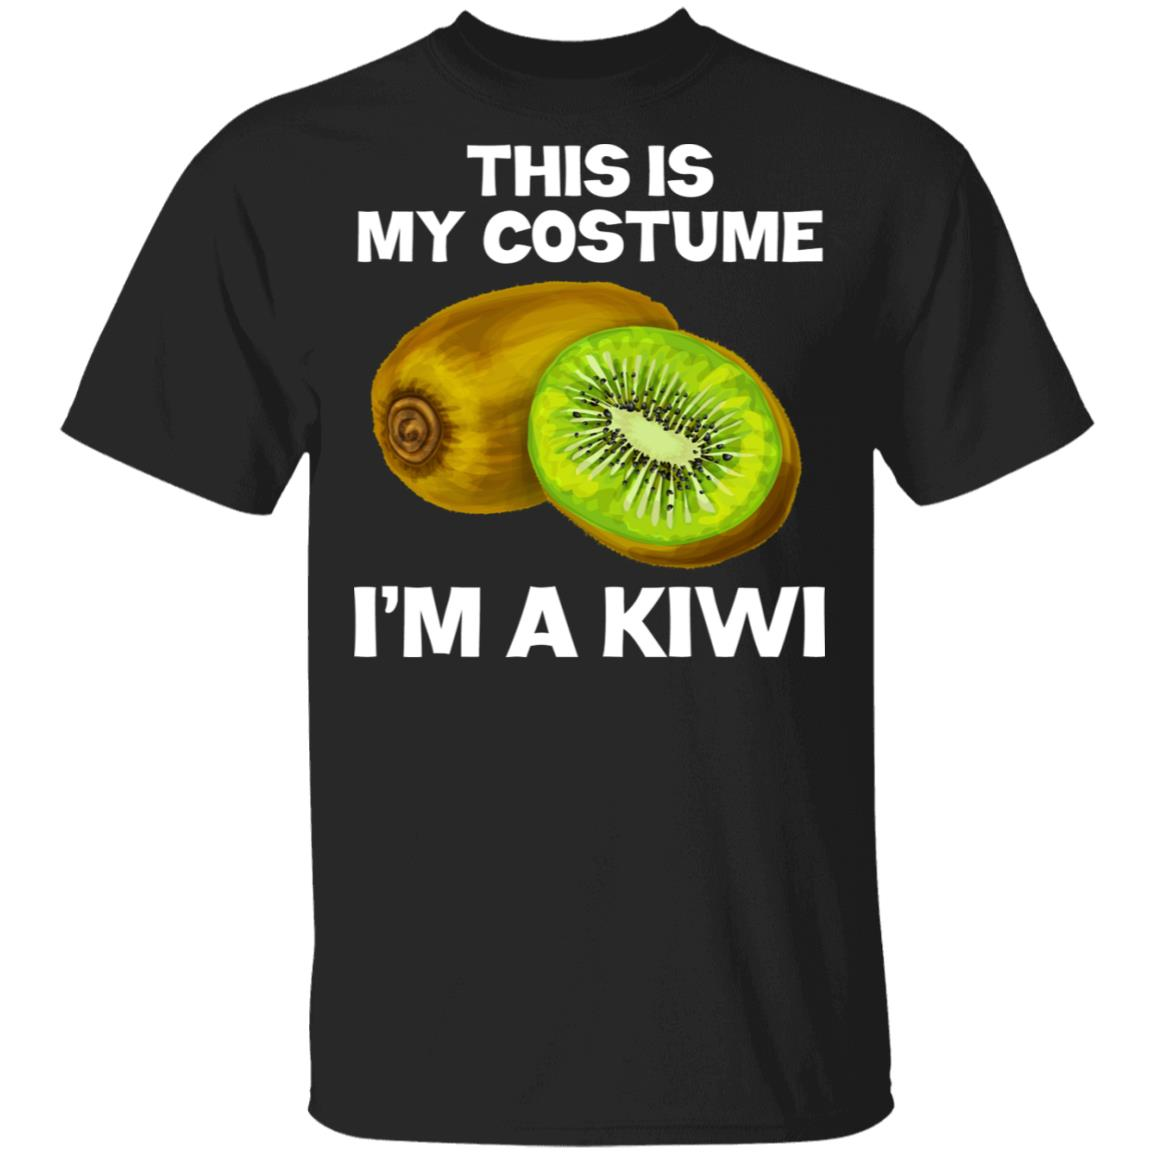 I'm A Kiwi This Is My Costume Unisex Short Sleeve